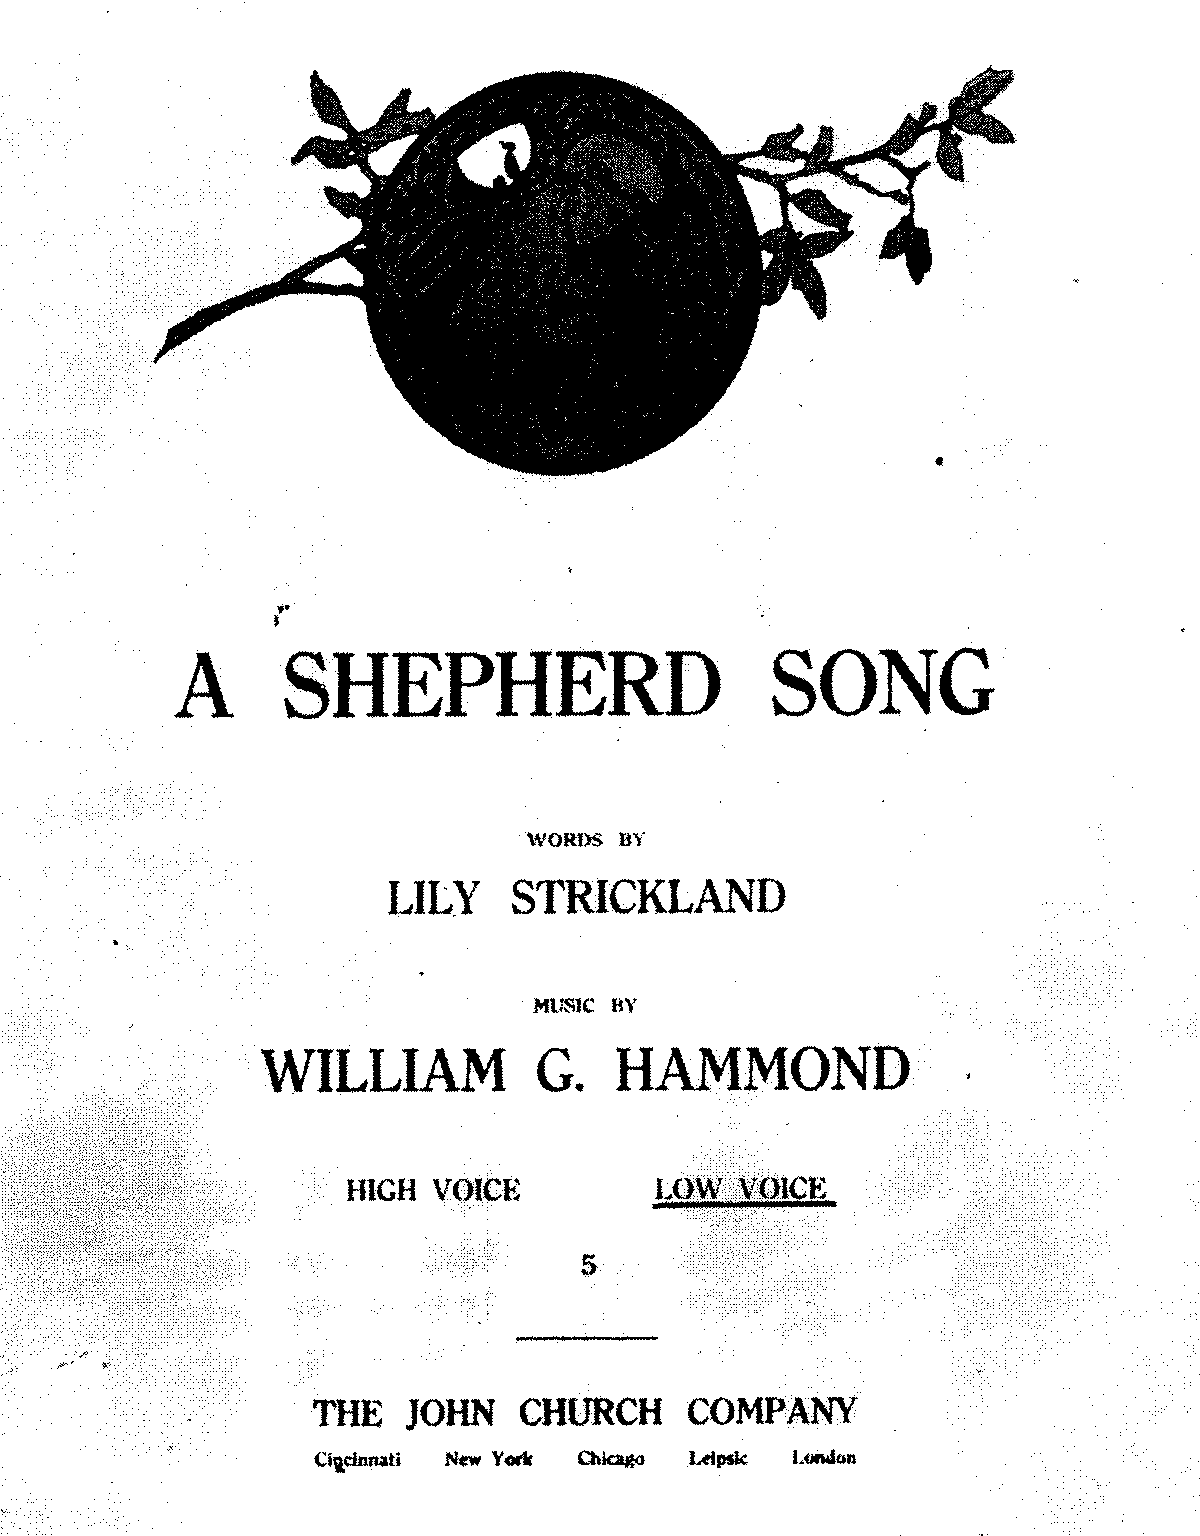 PMLP229296-Hammond A Shepherd Song cropped.pdf